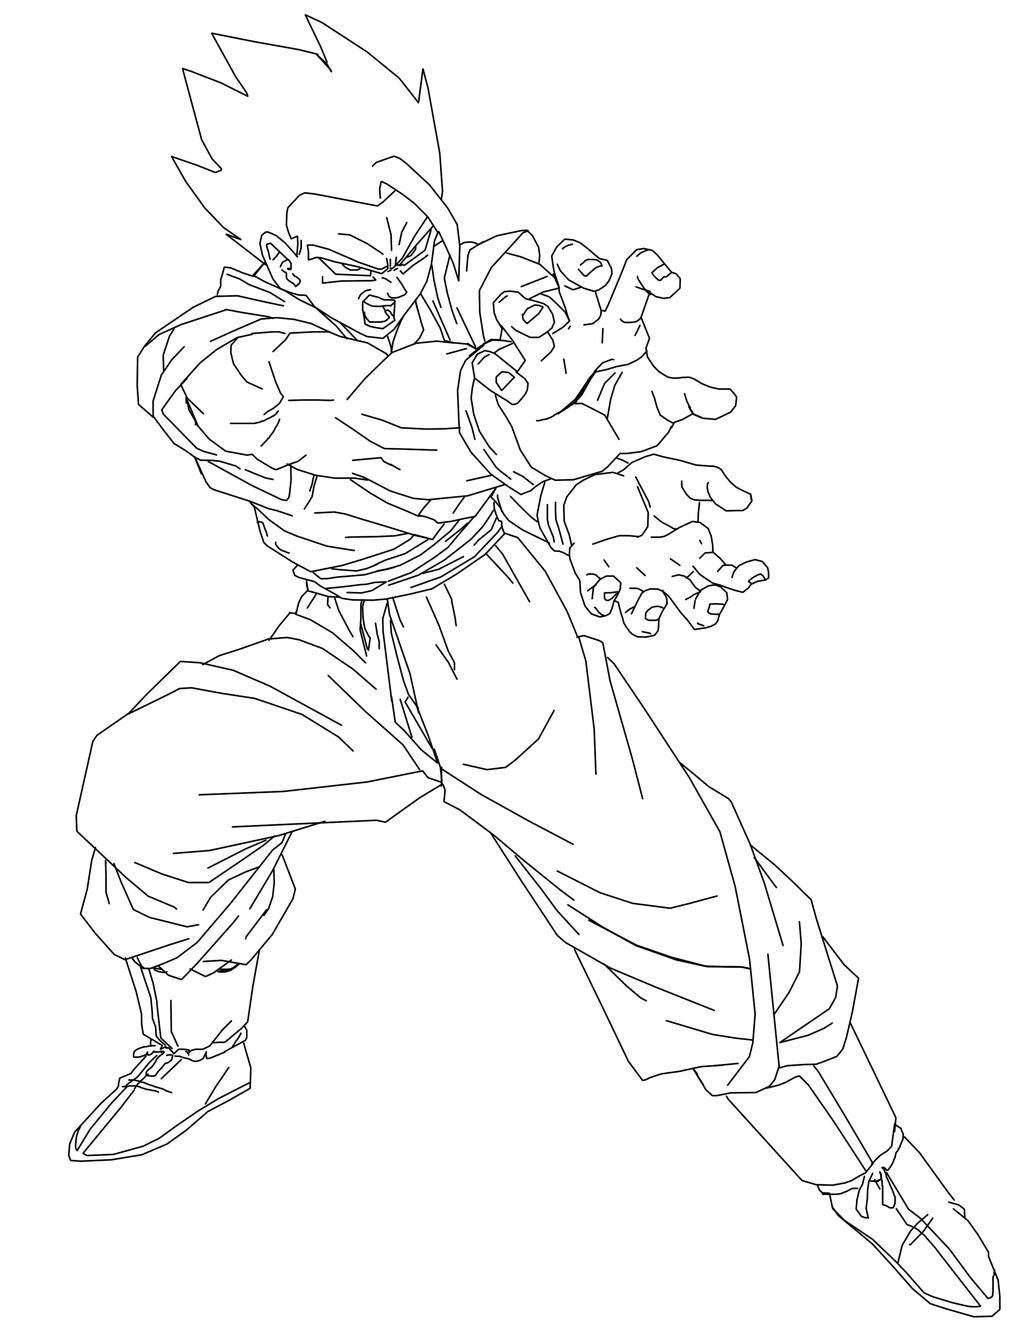 vegeta coloring pages - Mystic Gohan line art